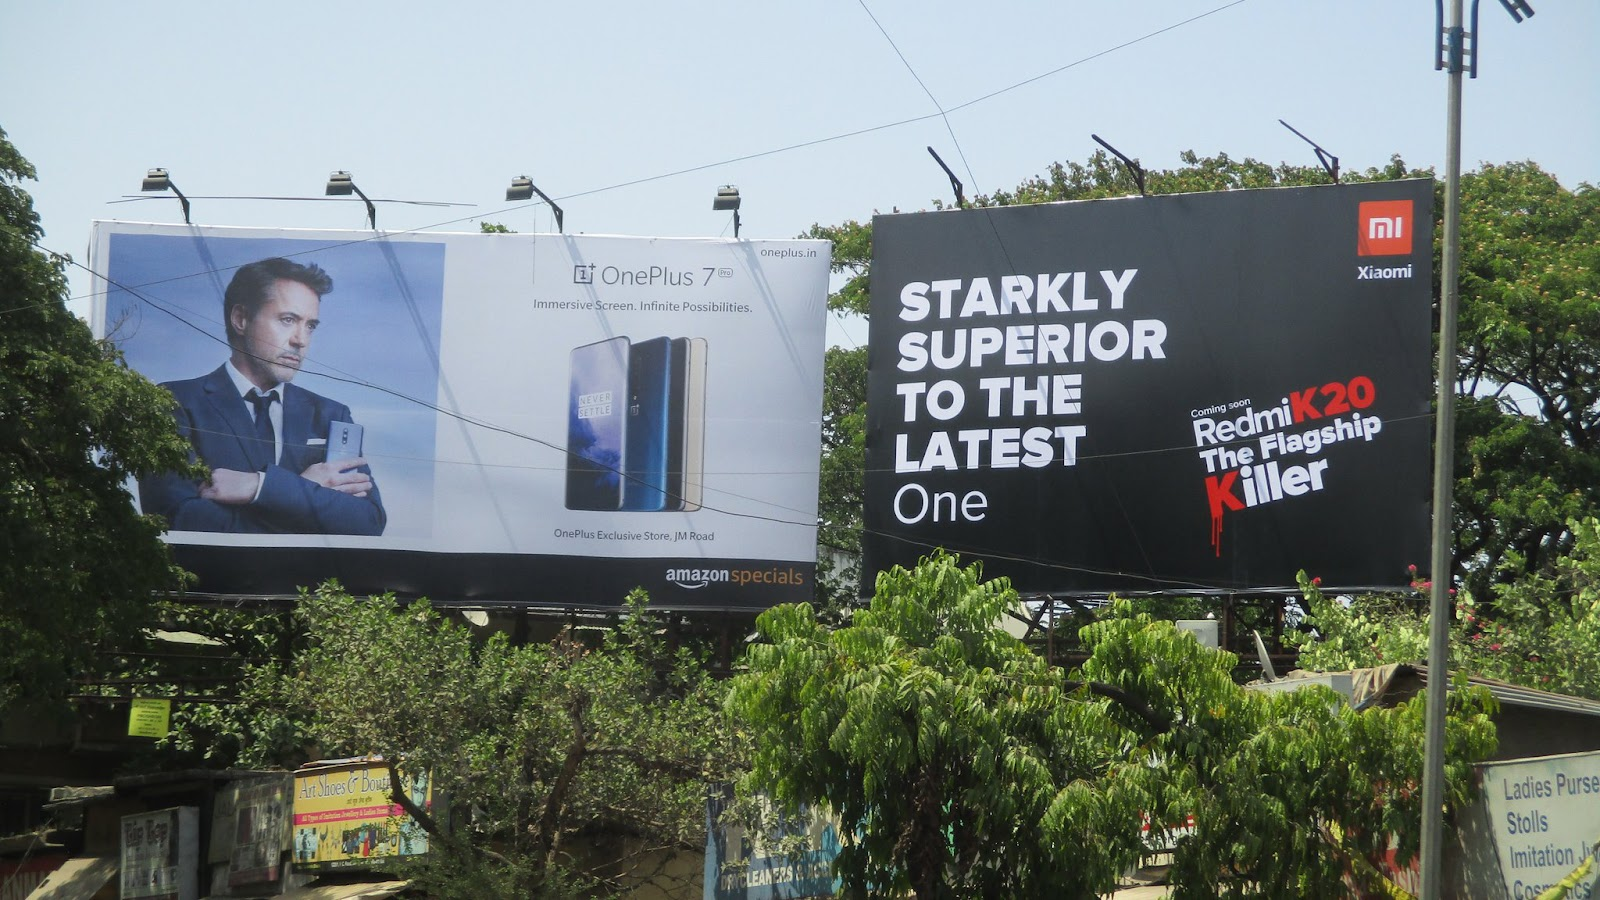 2 billboards next to each other about promoting new smartphones for OnePlus and Xiaomi